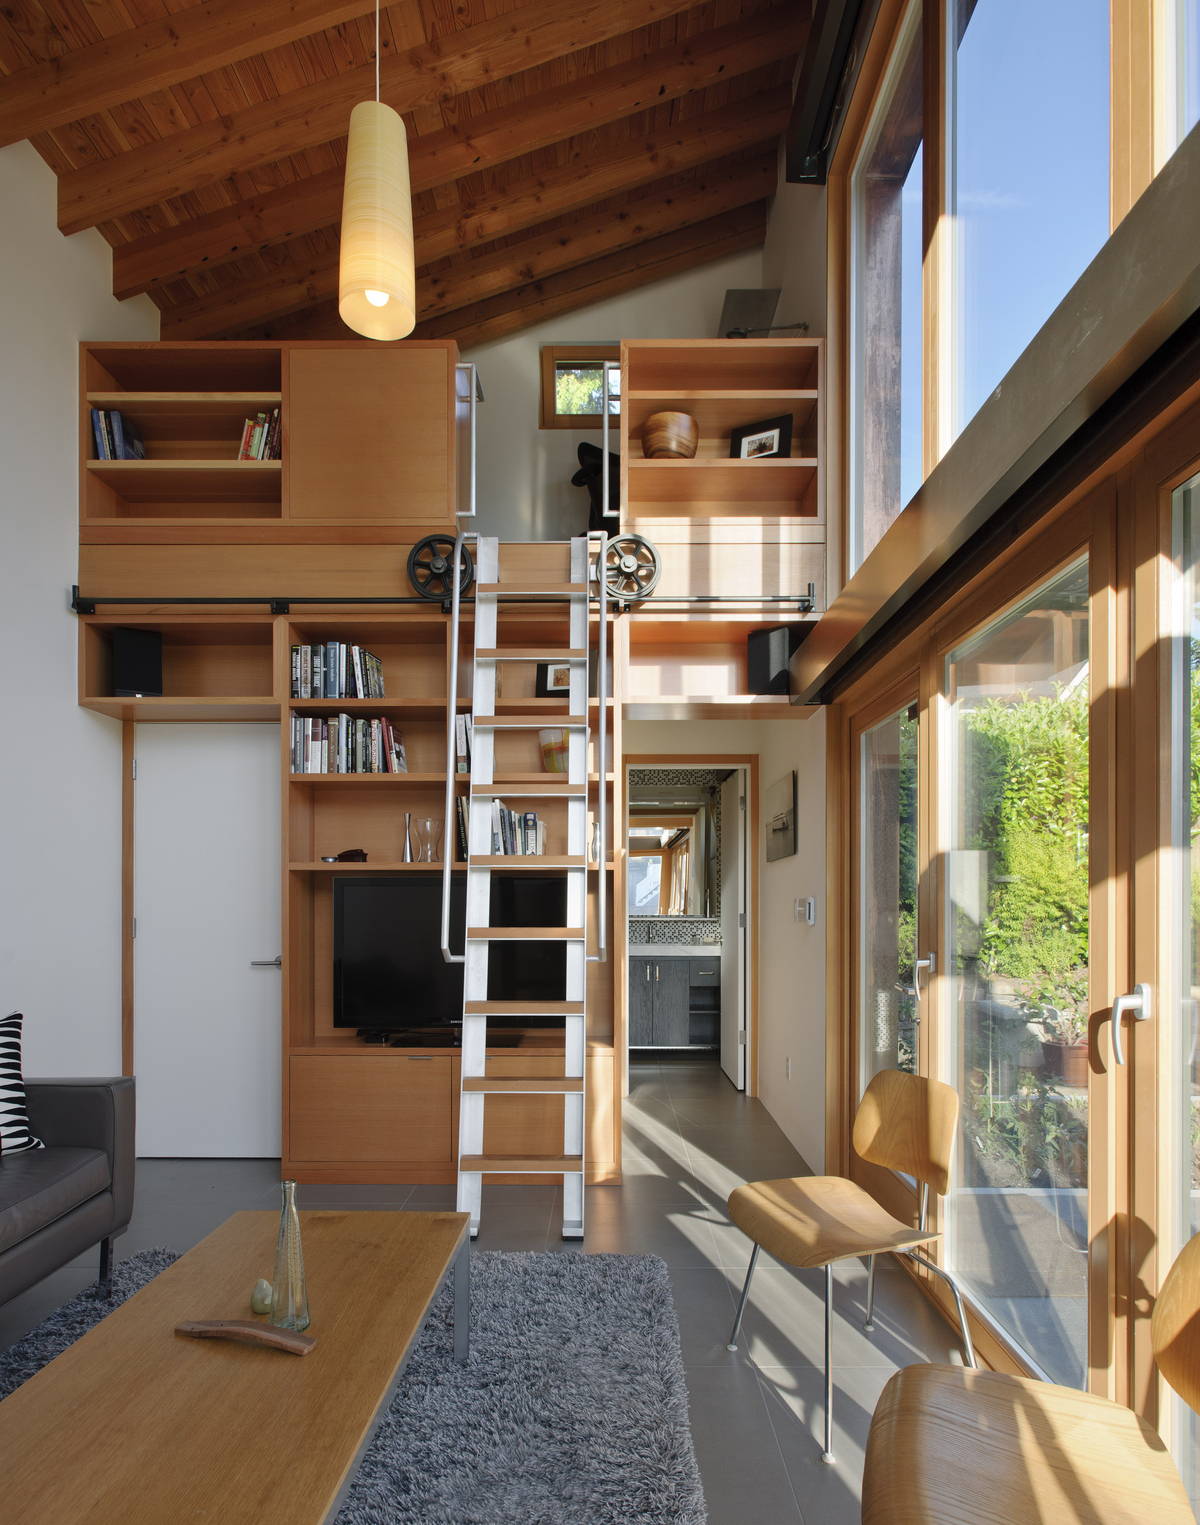 Looking at loft area accessible by ladder